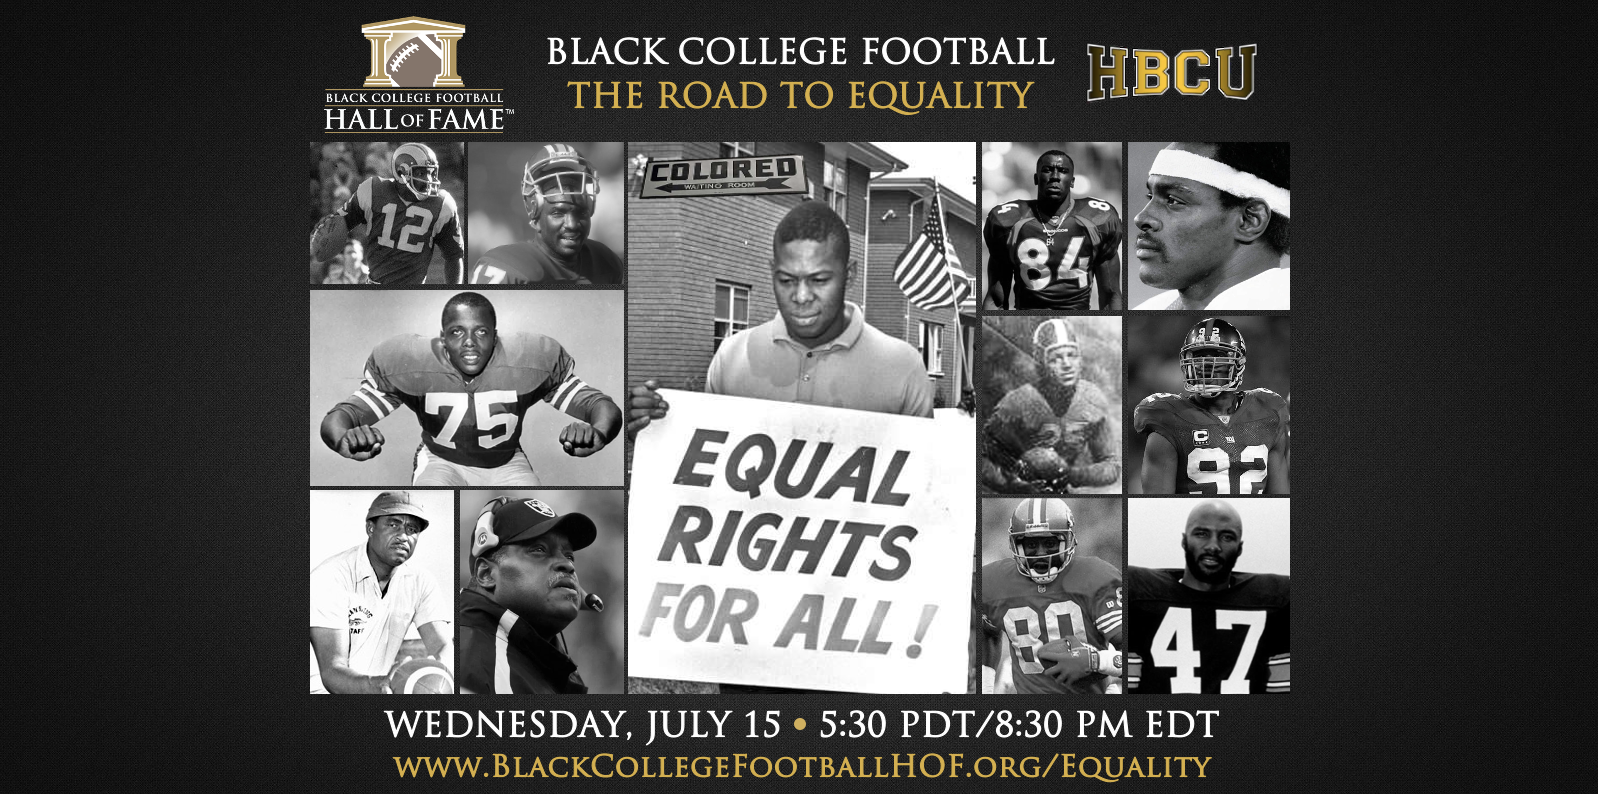 Black College Football...The Road to Equality